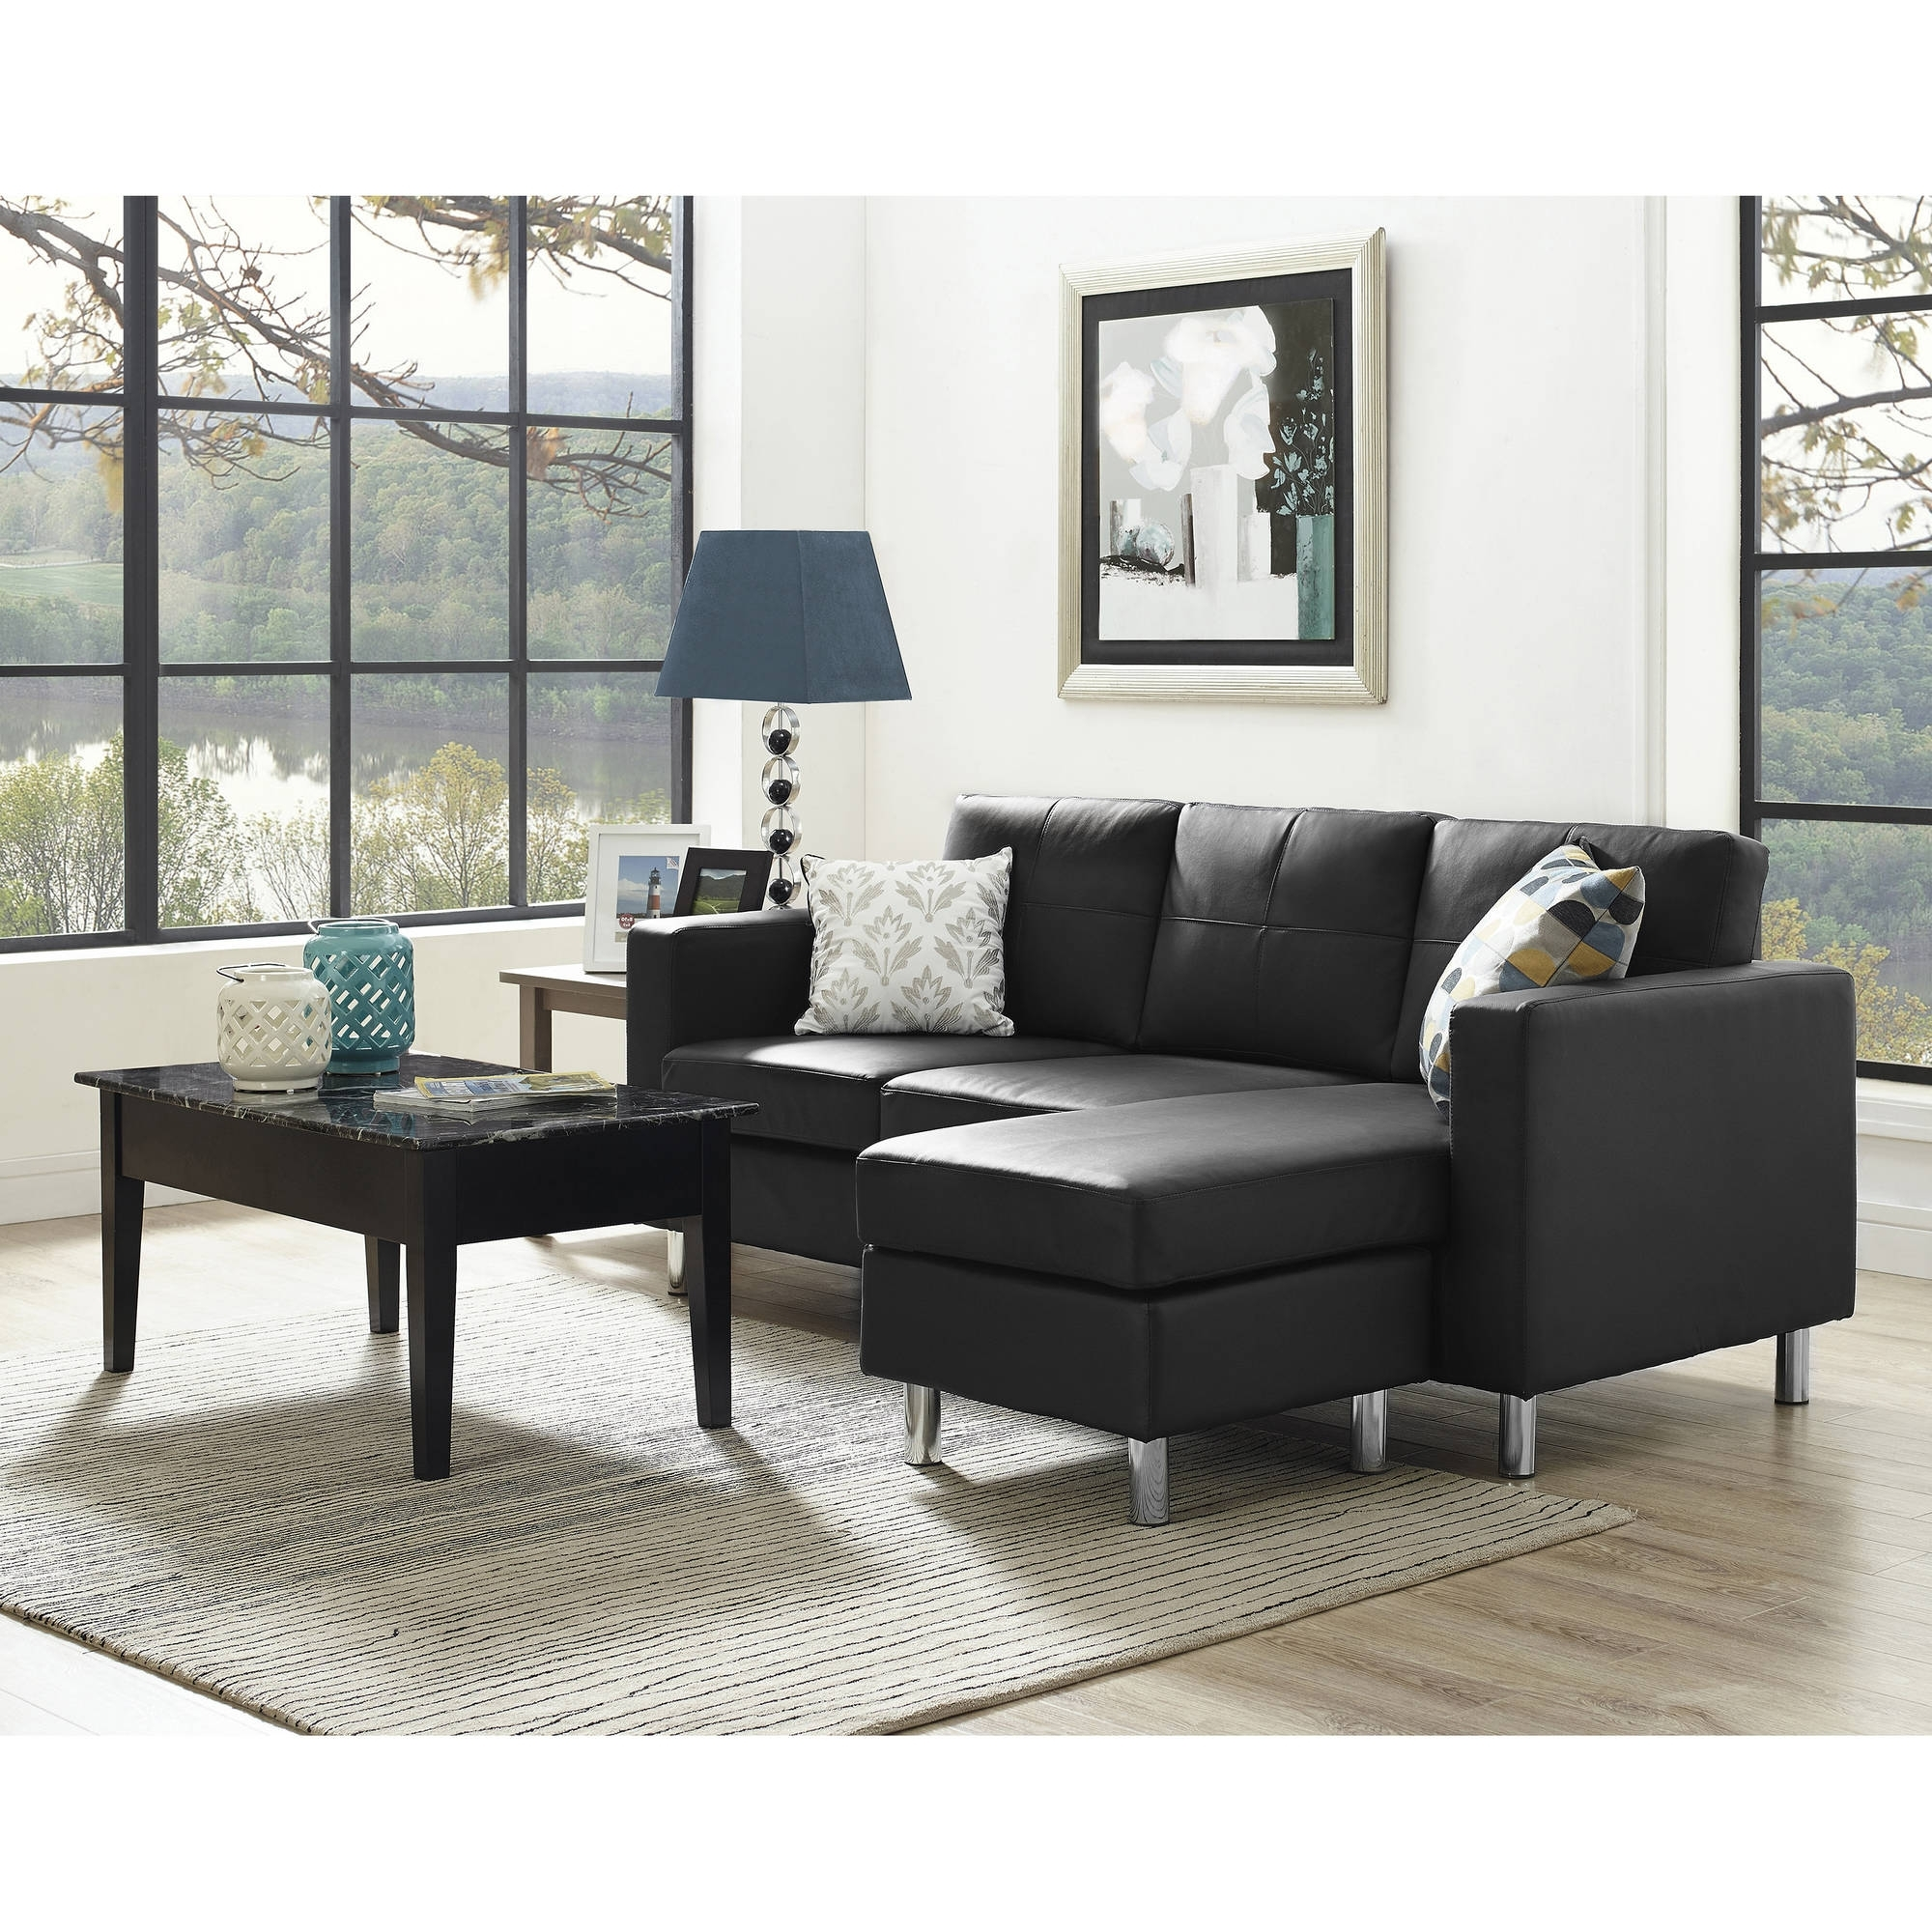 2018 Sectional Sofas For Small Areas With Choice (View 2 of 20)